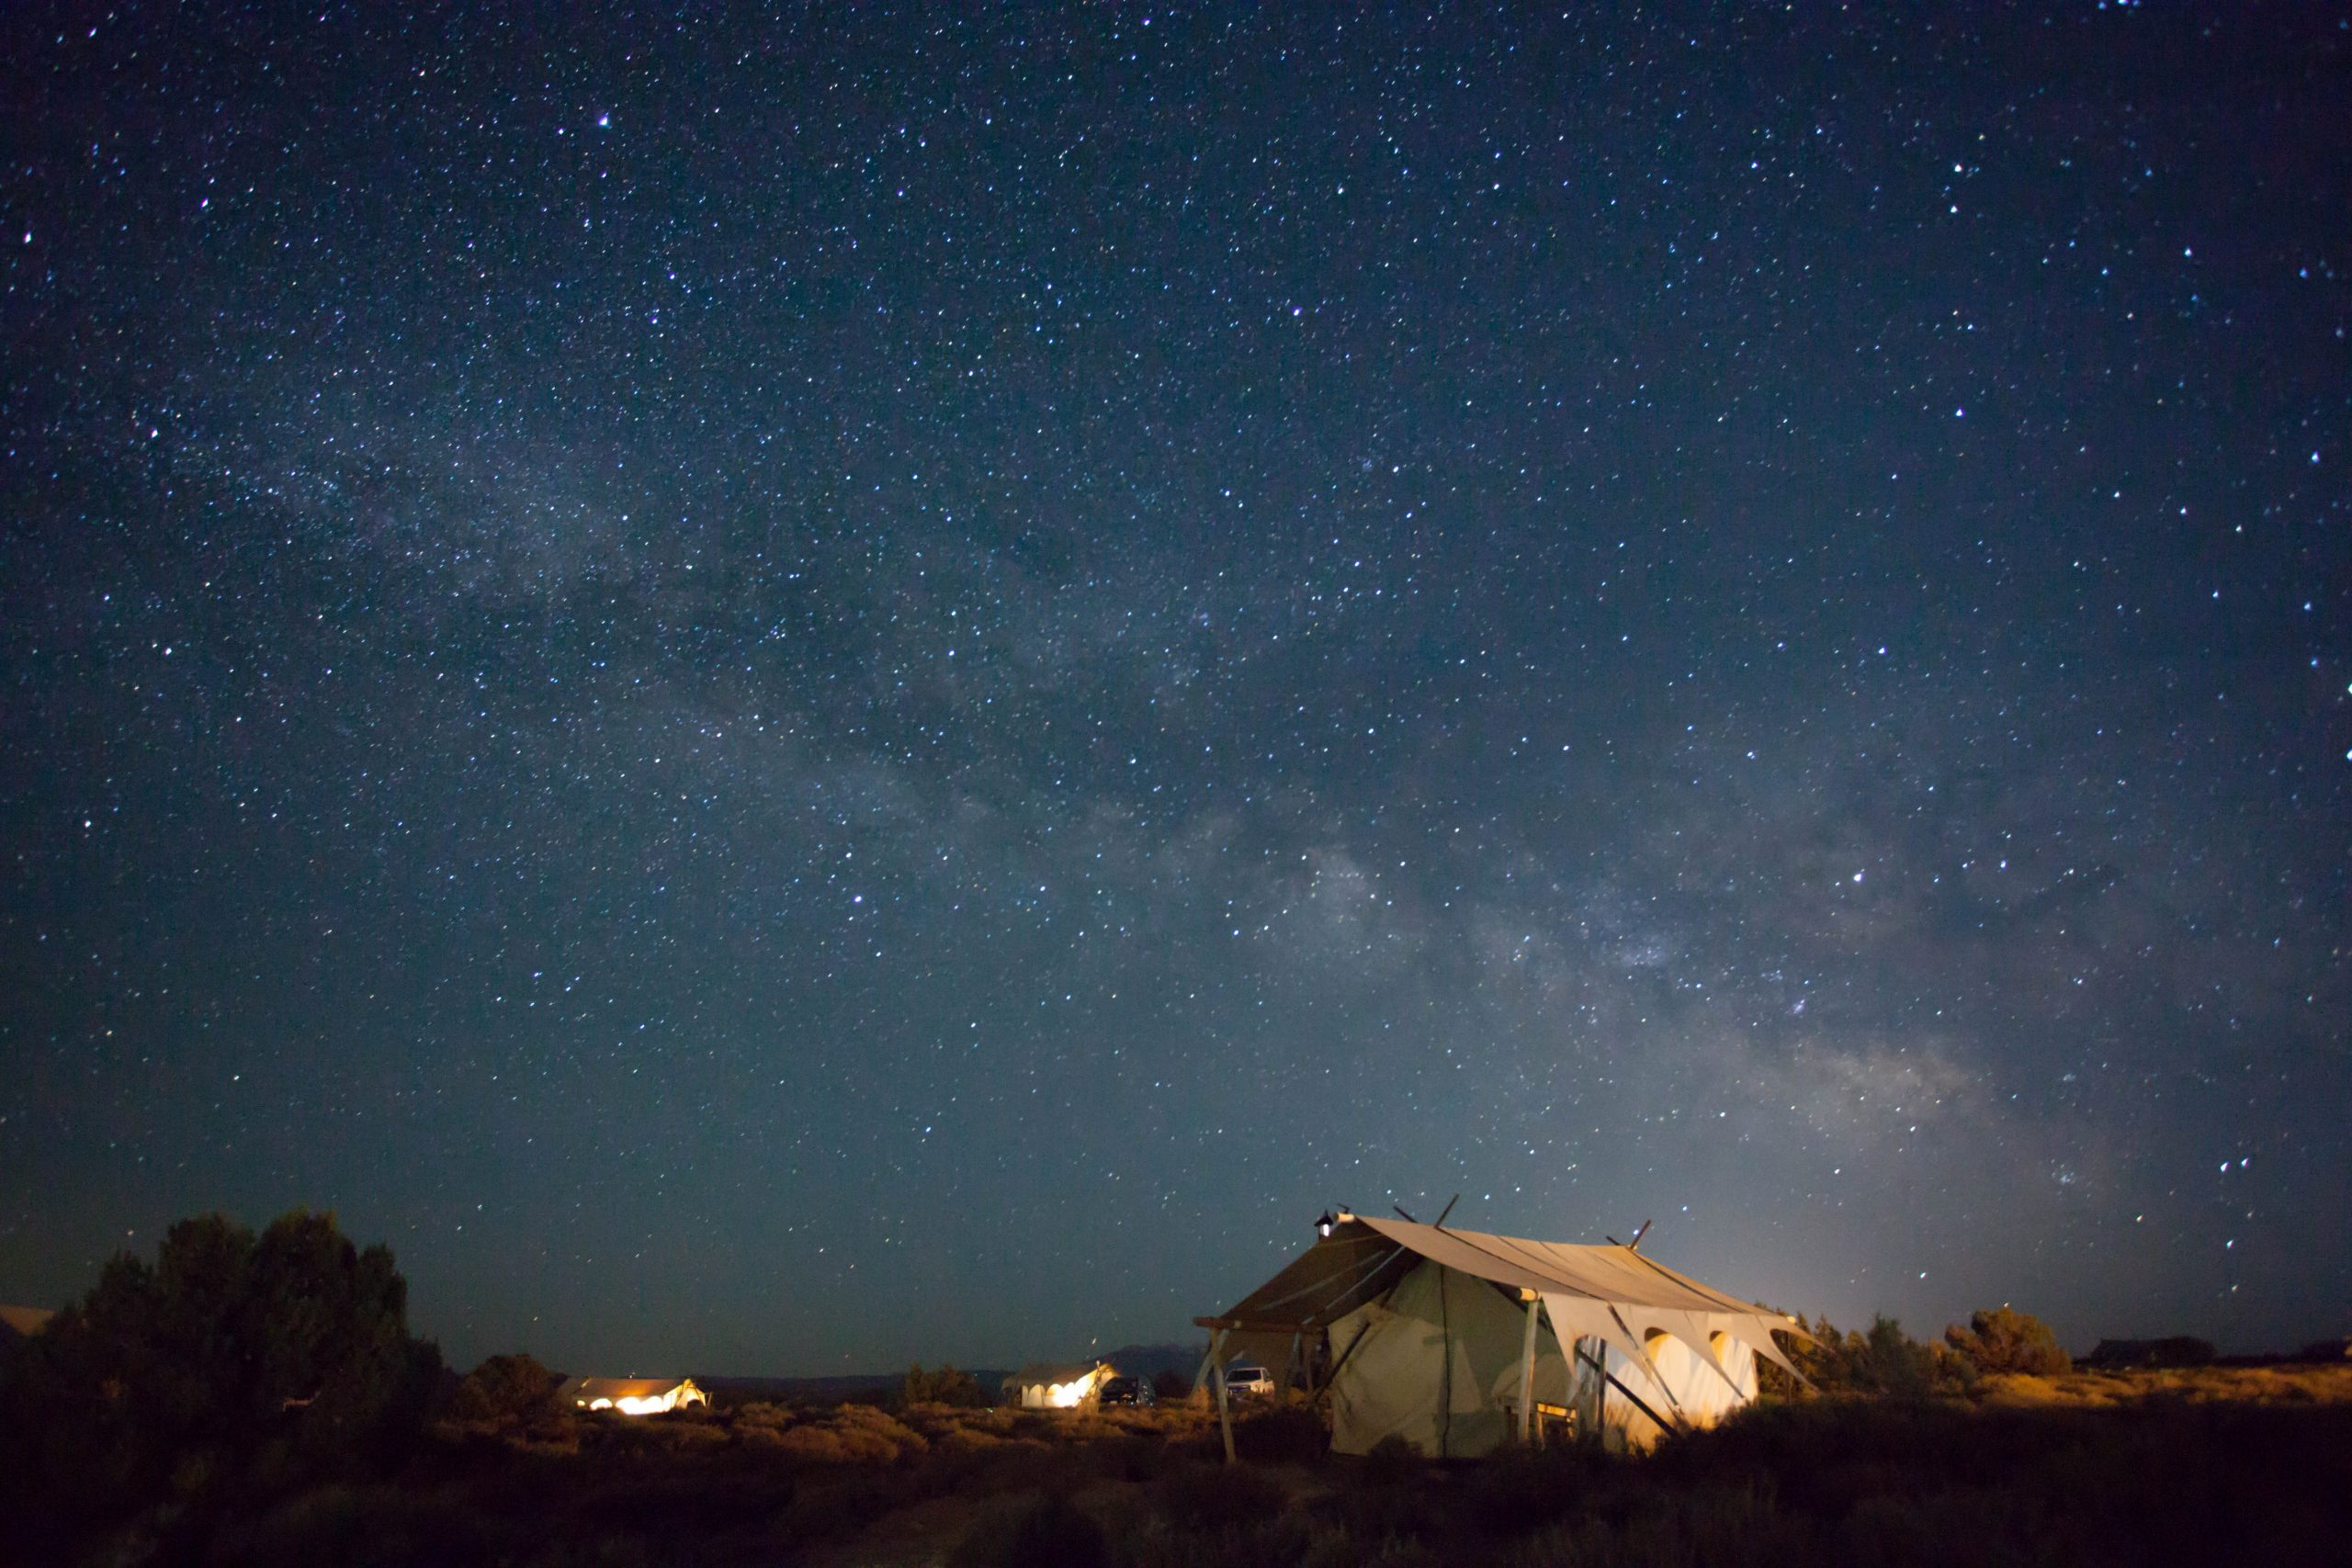 A large tent under a starlit sky